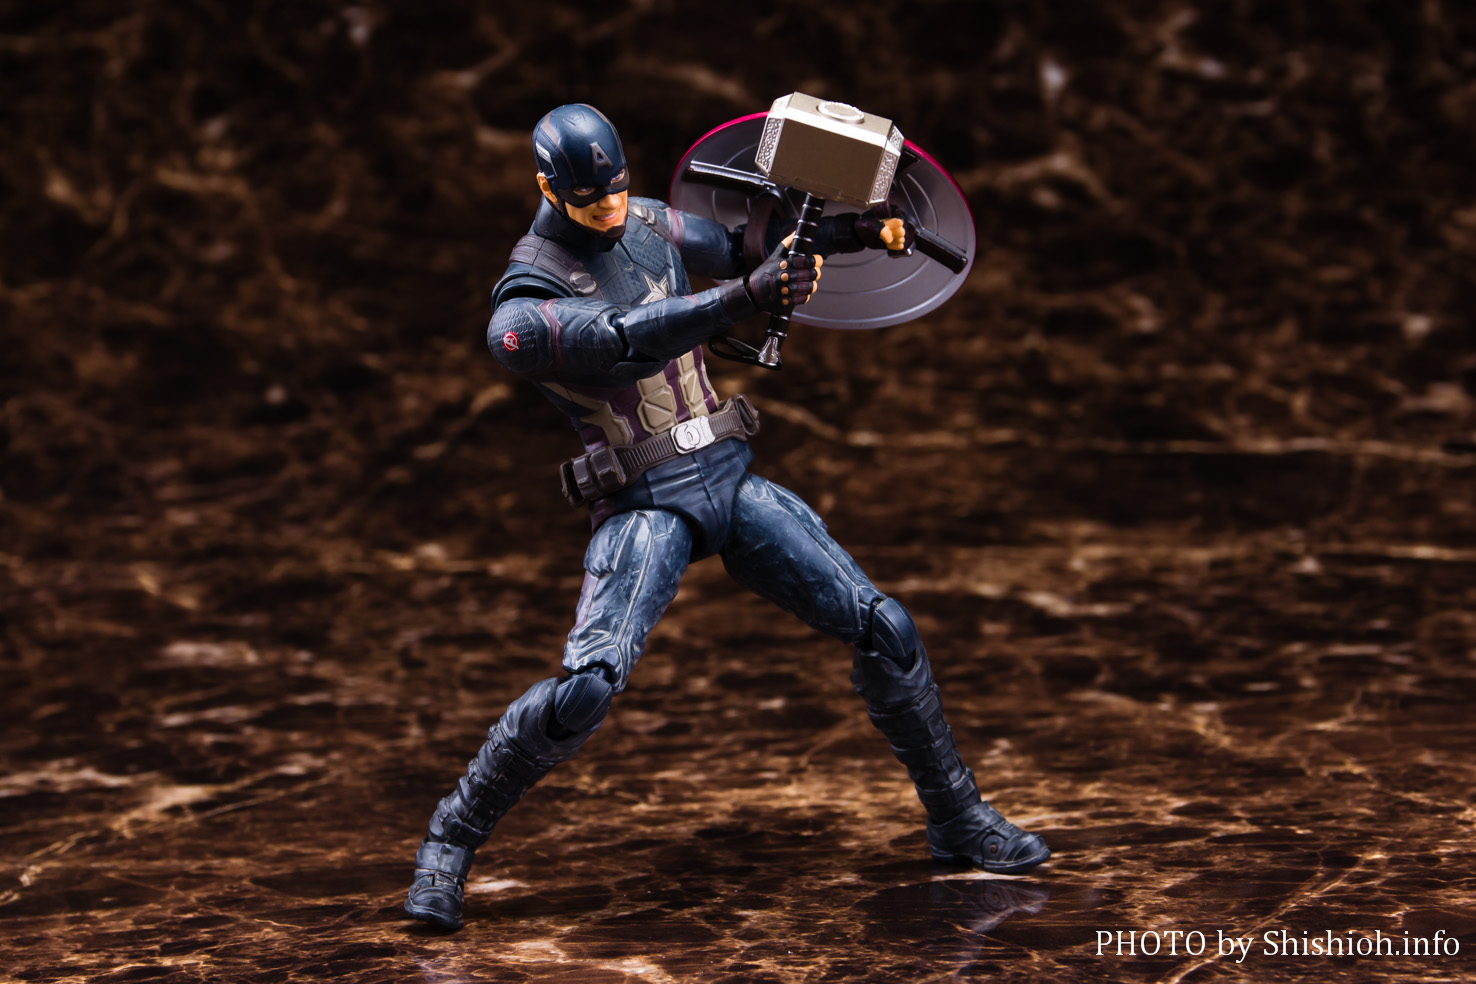 S.H.Figuarts キャプテン・アメリカ -《FINAL BATTLE》EDITION-